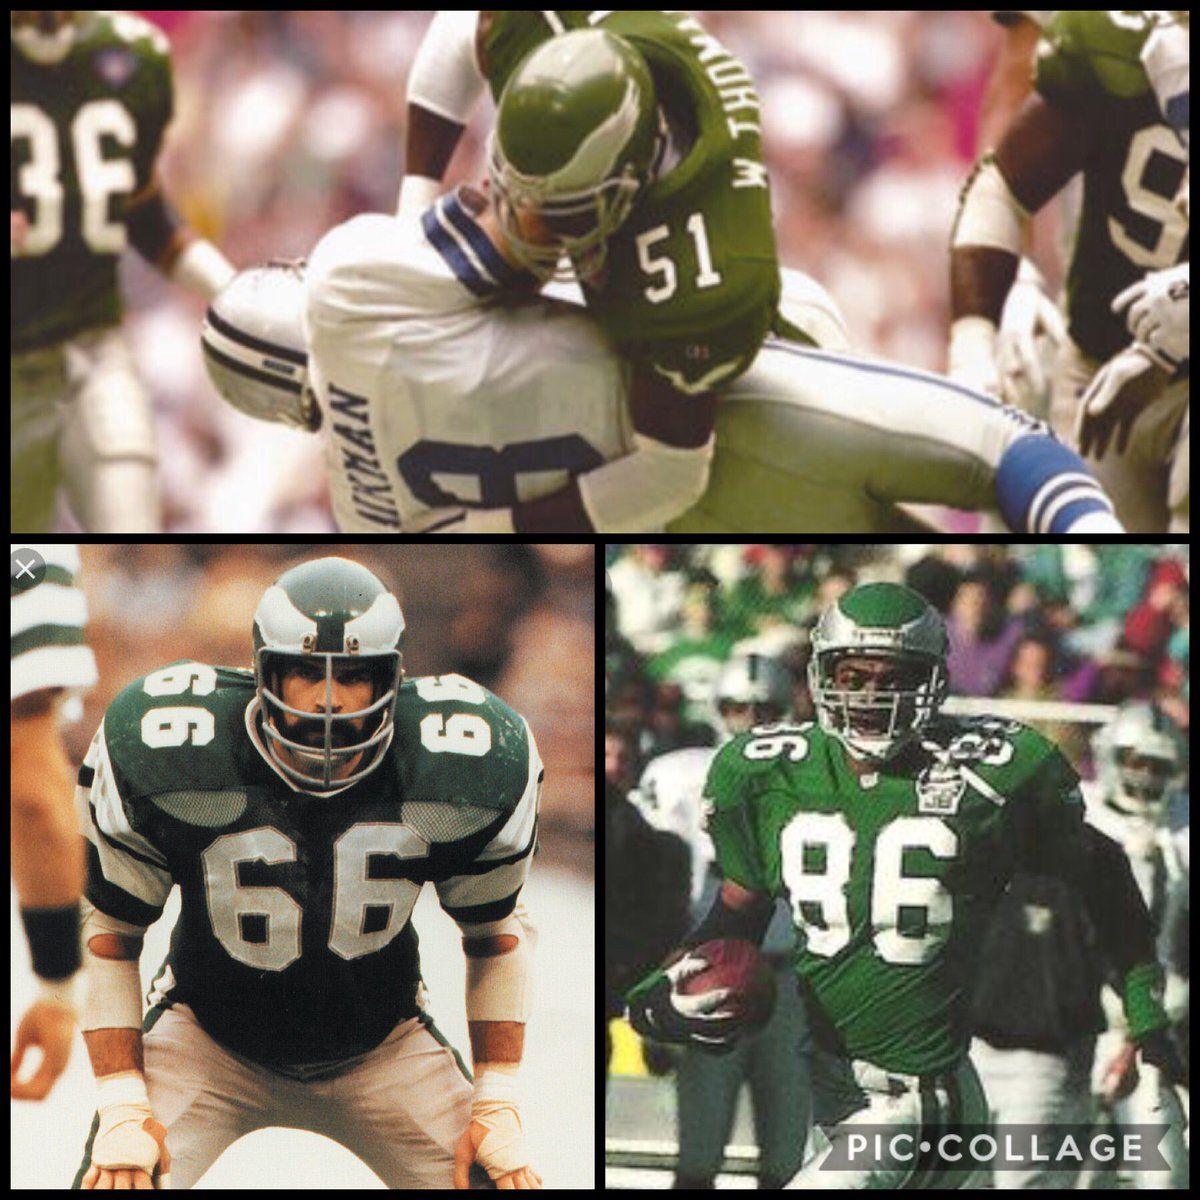 Meet Fred Barnett, Bill Bergey and Willie T. at @ChickiesnPetes Aug 28th and support the new Museum of Sports!  Food/Drink/Autographs included!  Ticket info: http://the-museum-of-sports.ticketleap.com/eagles-kickoff     #FlyEaglesFly 